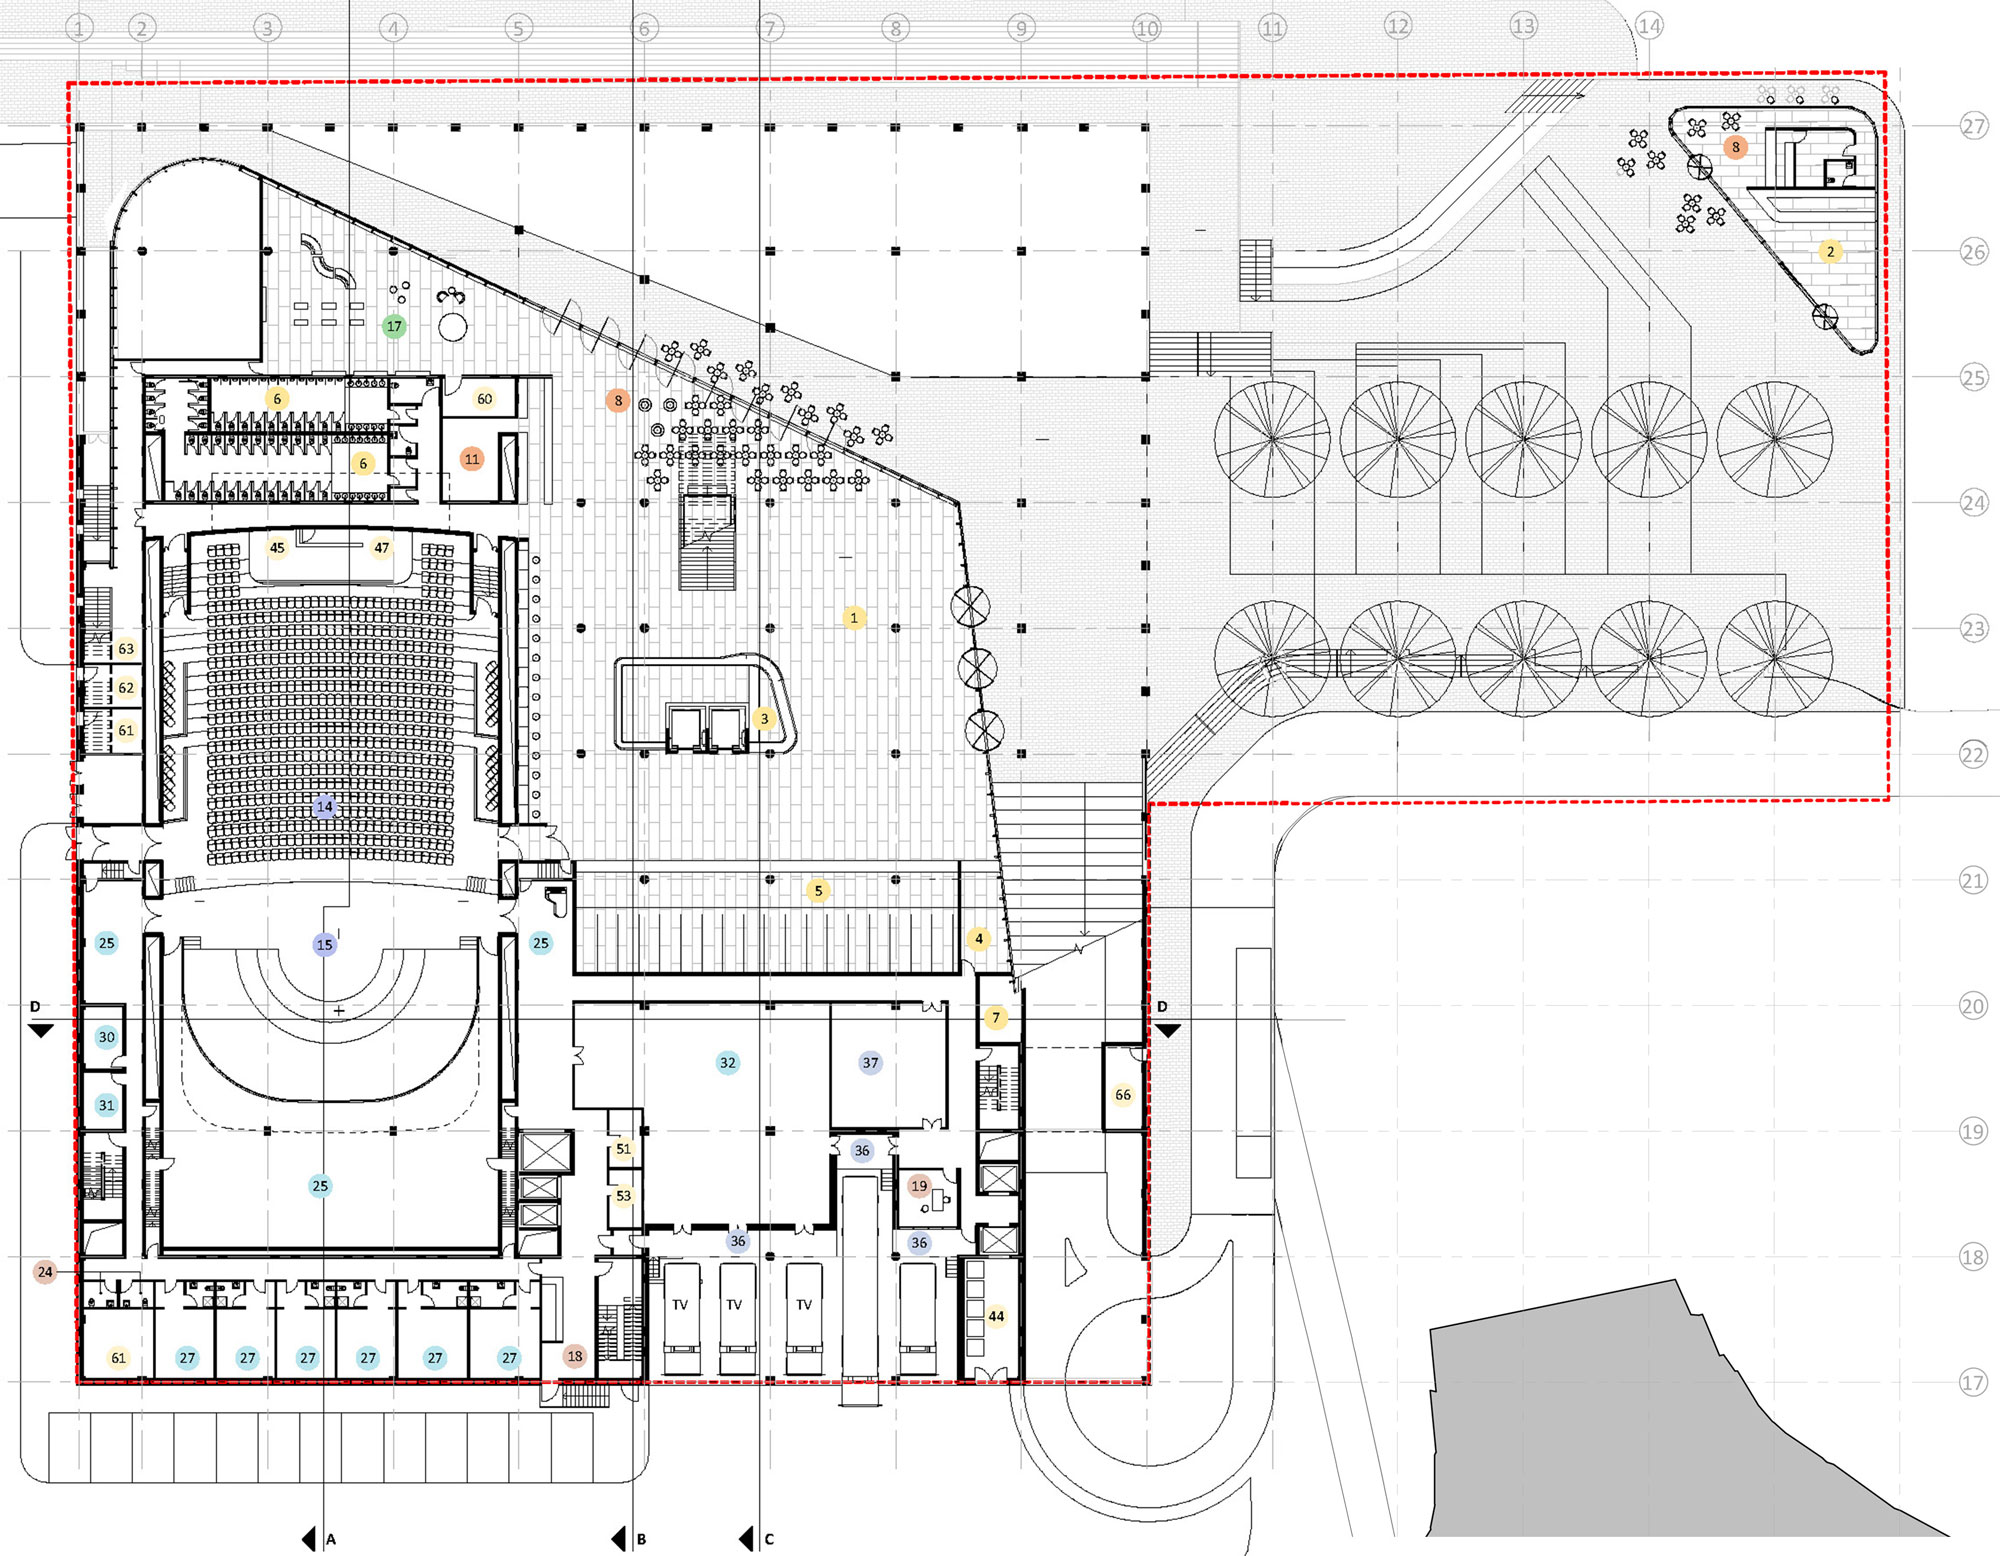 AR_Architecture_National_concert_hall_Sketches&Plans_011